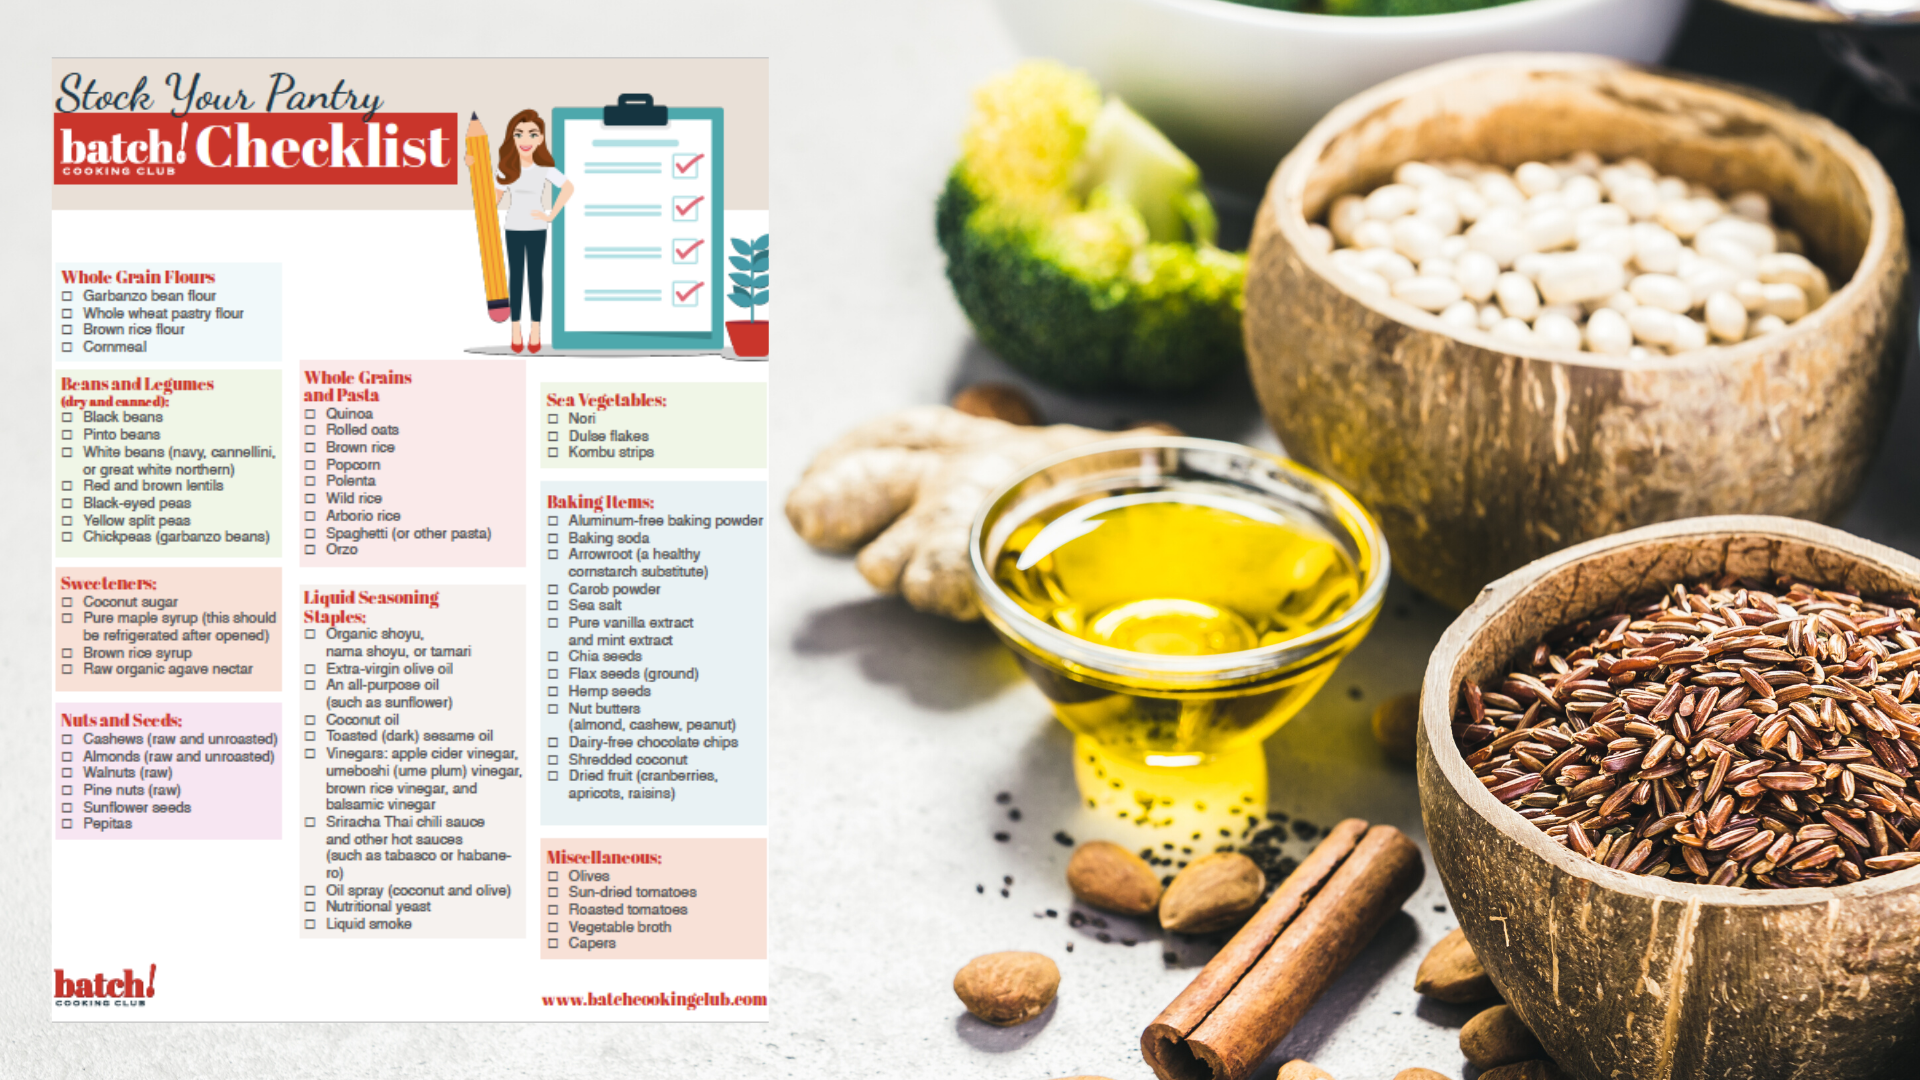 Stock Your Pantry Checklist